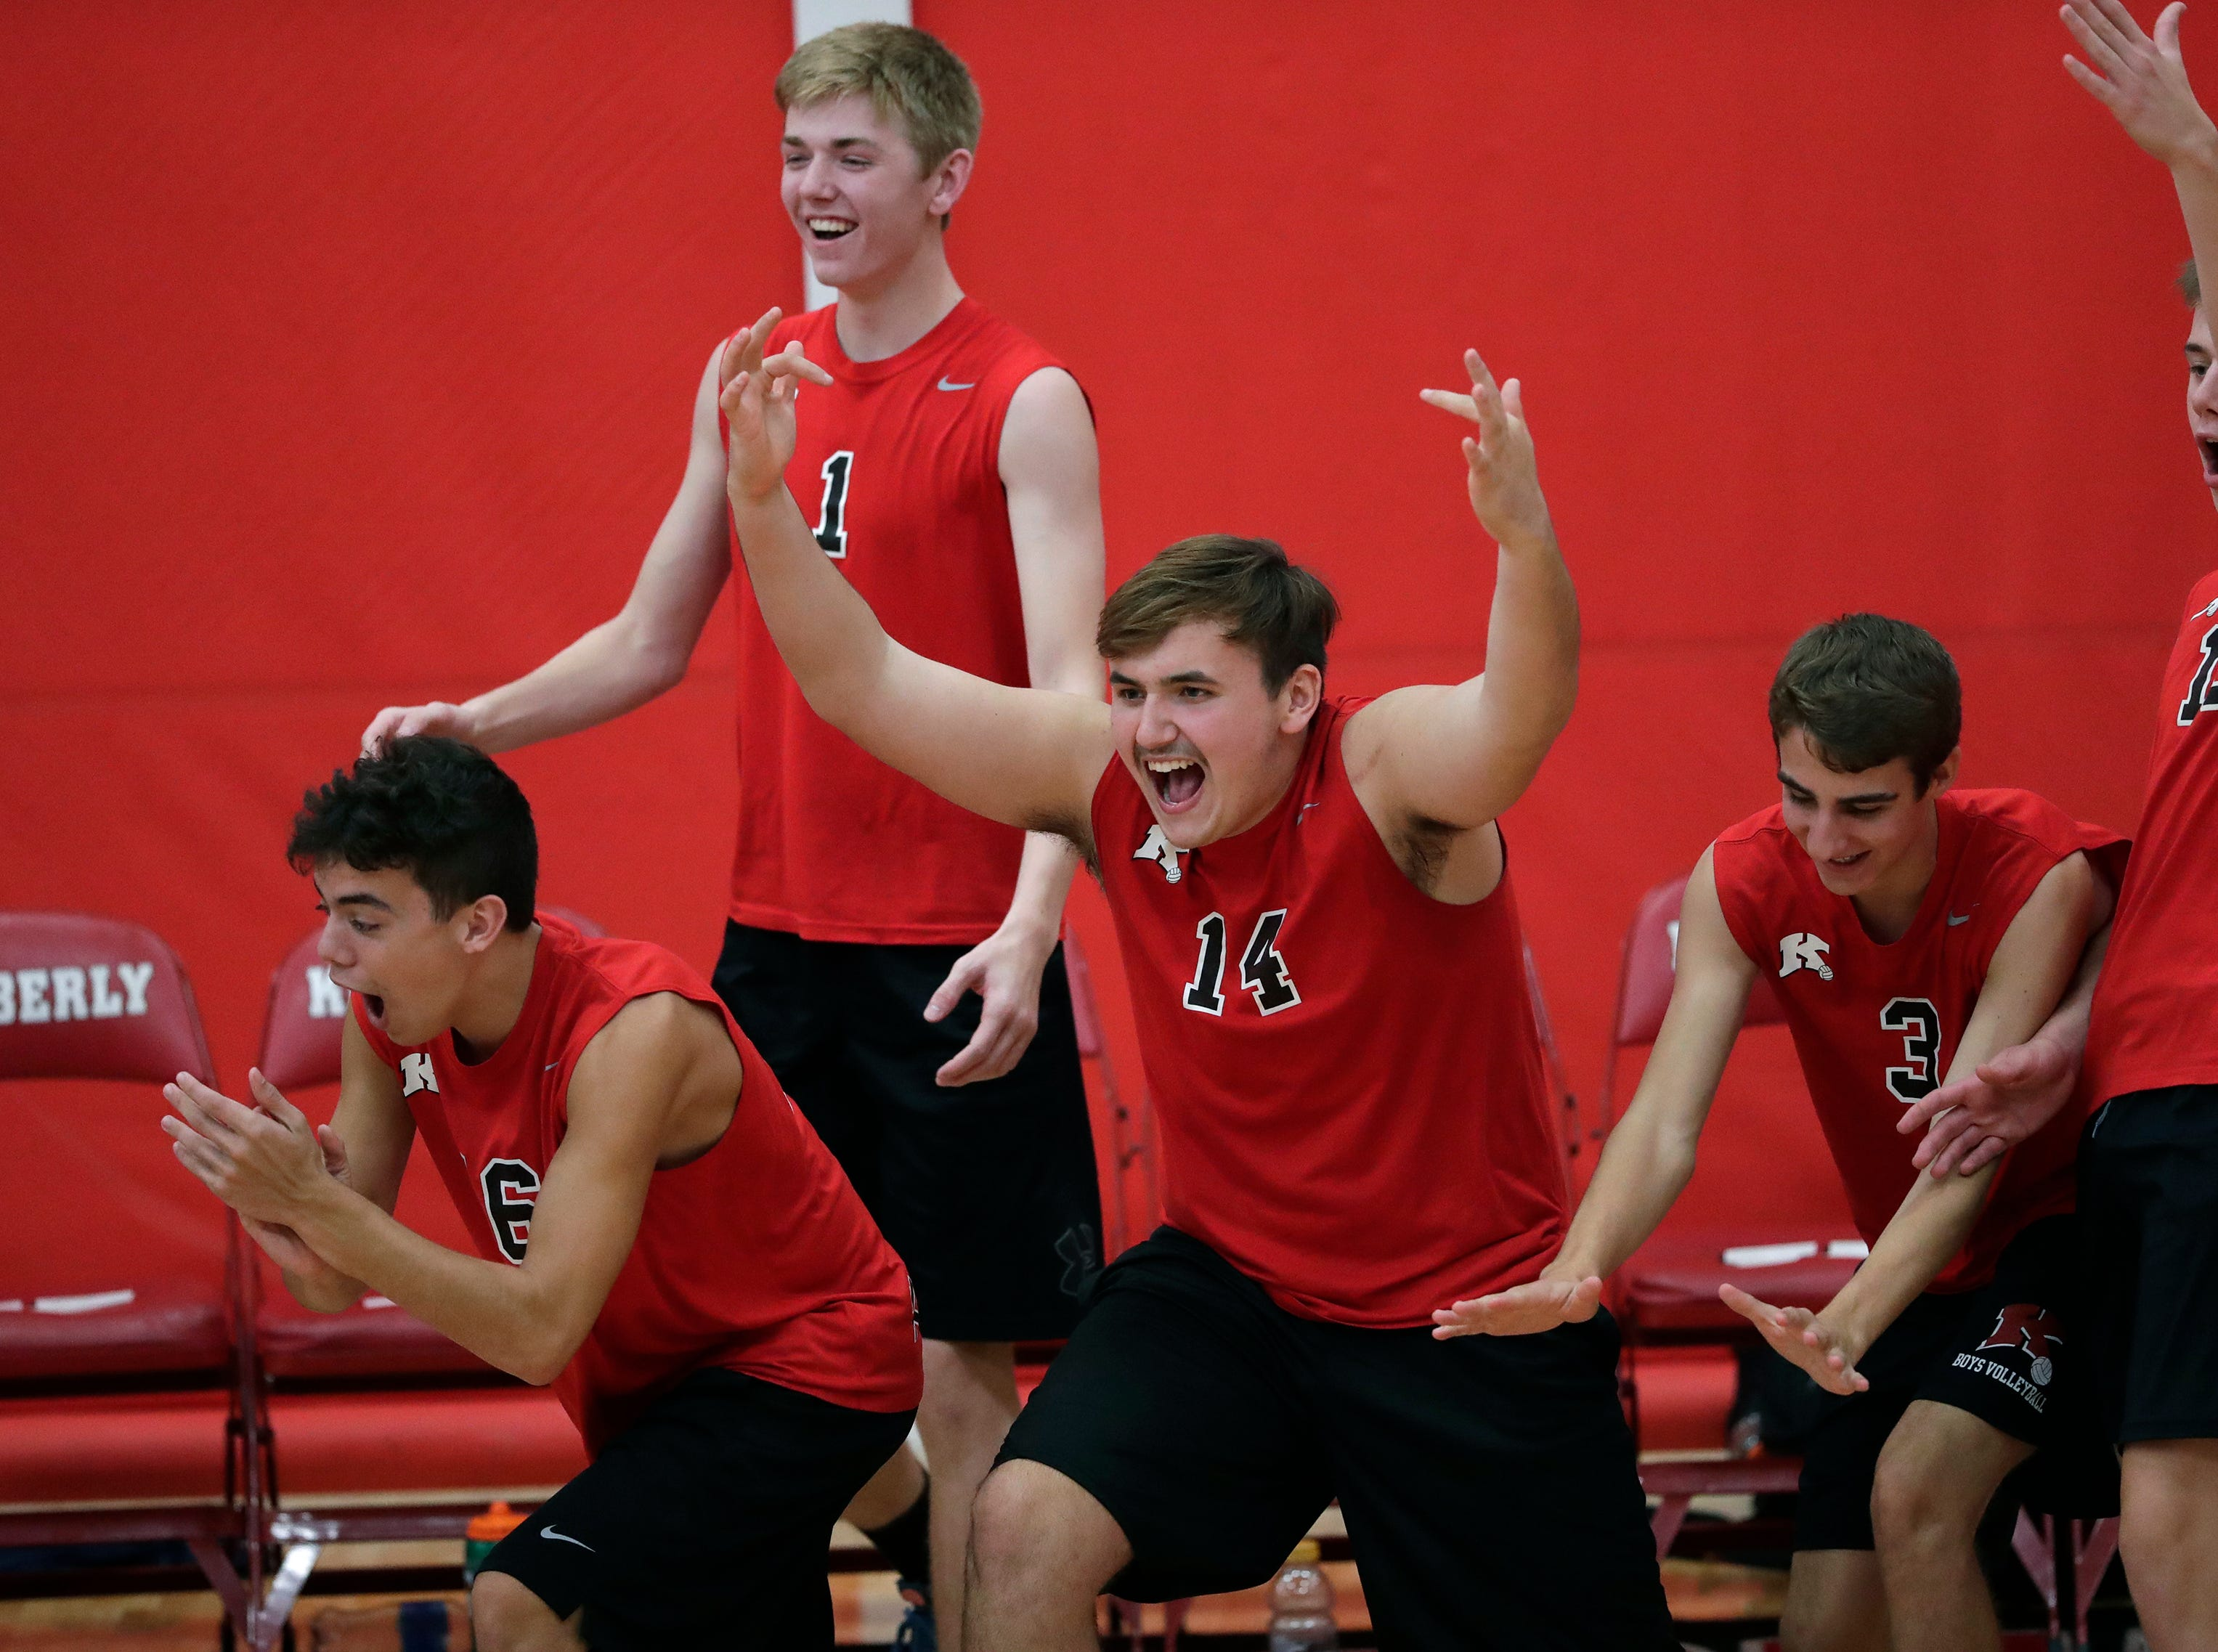 Kimberly High School's players celebrate winning a point against Appleton North High School during their boys volleyball match Tuesday, Oct. 9, 2018, in Kimberly, Wis. 